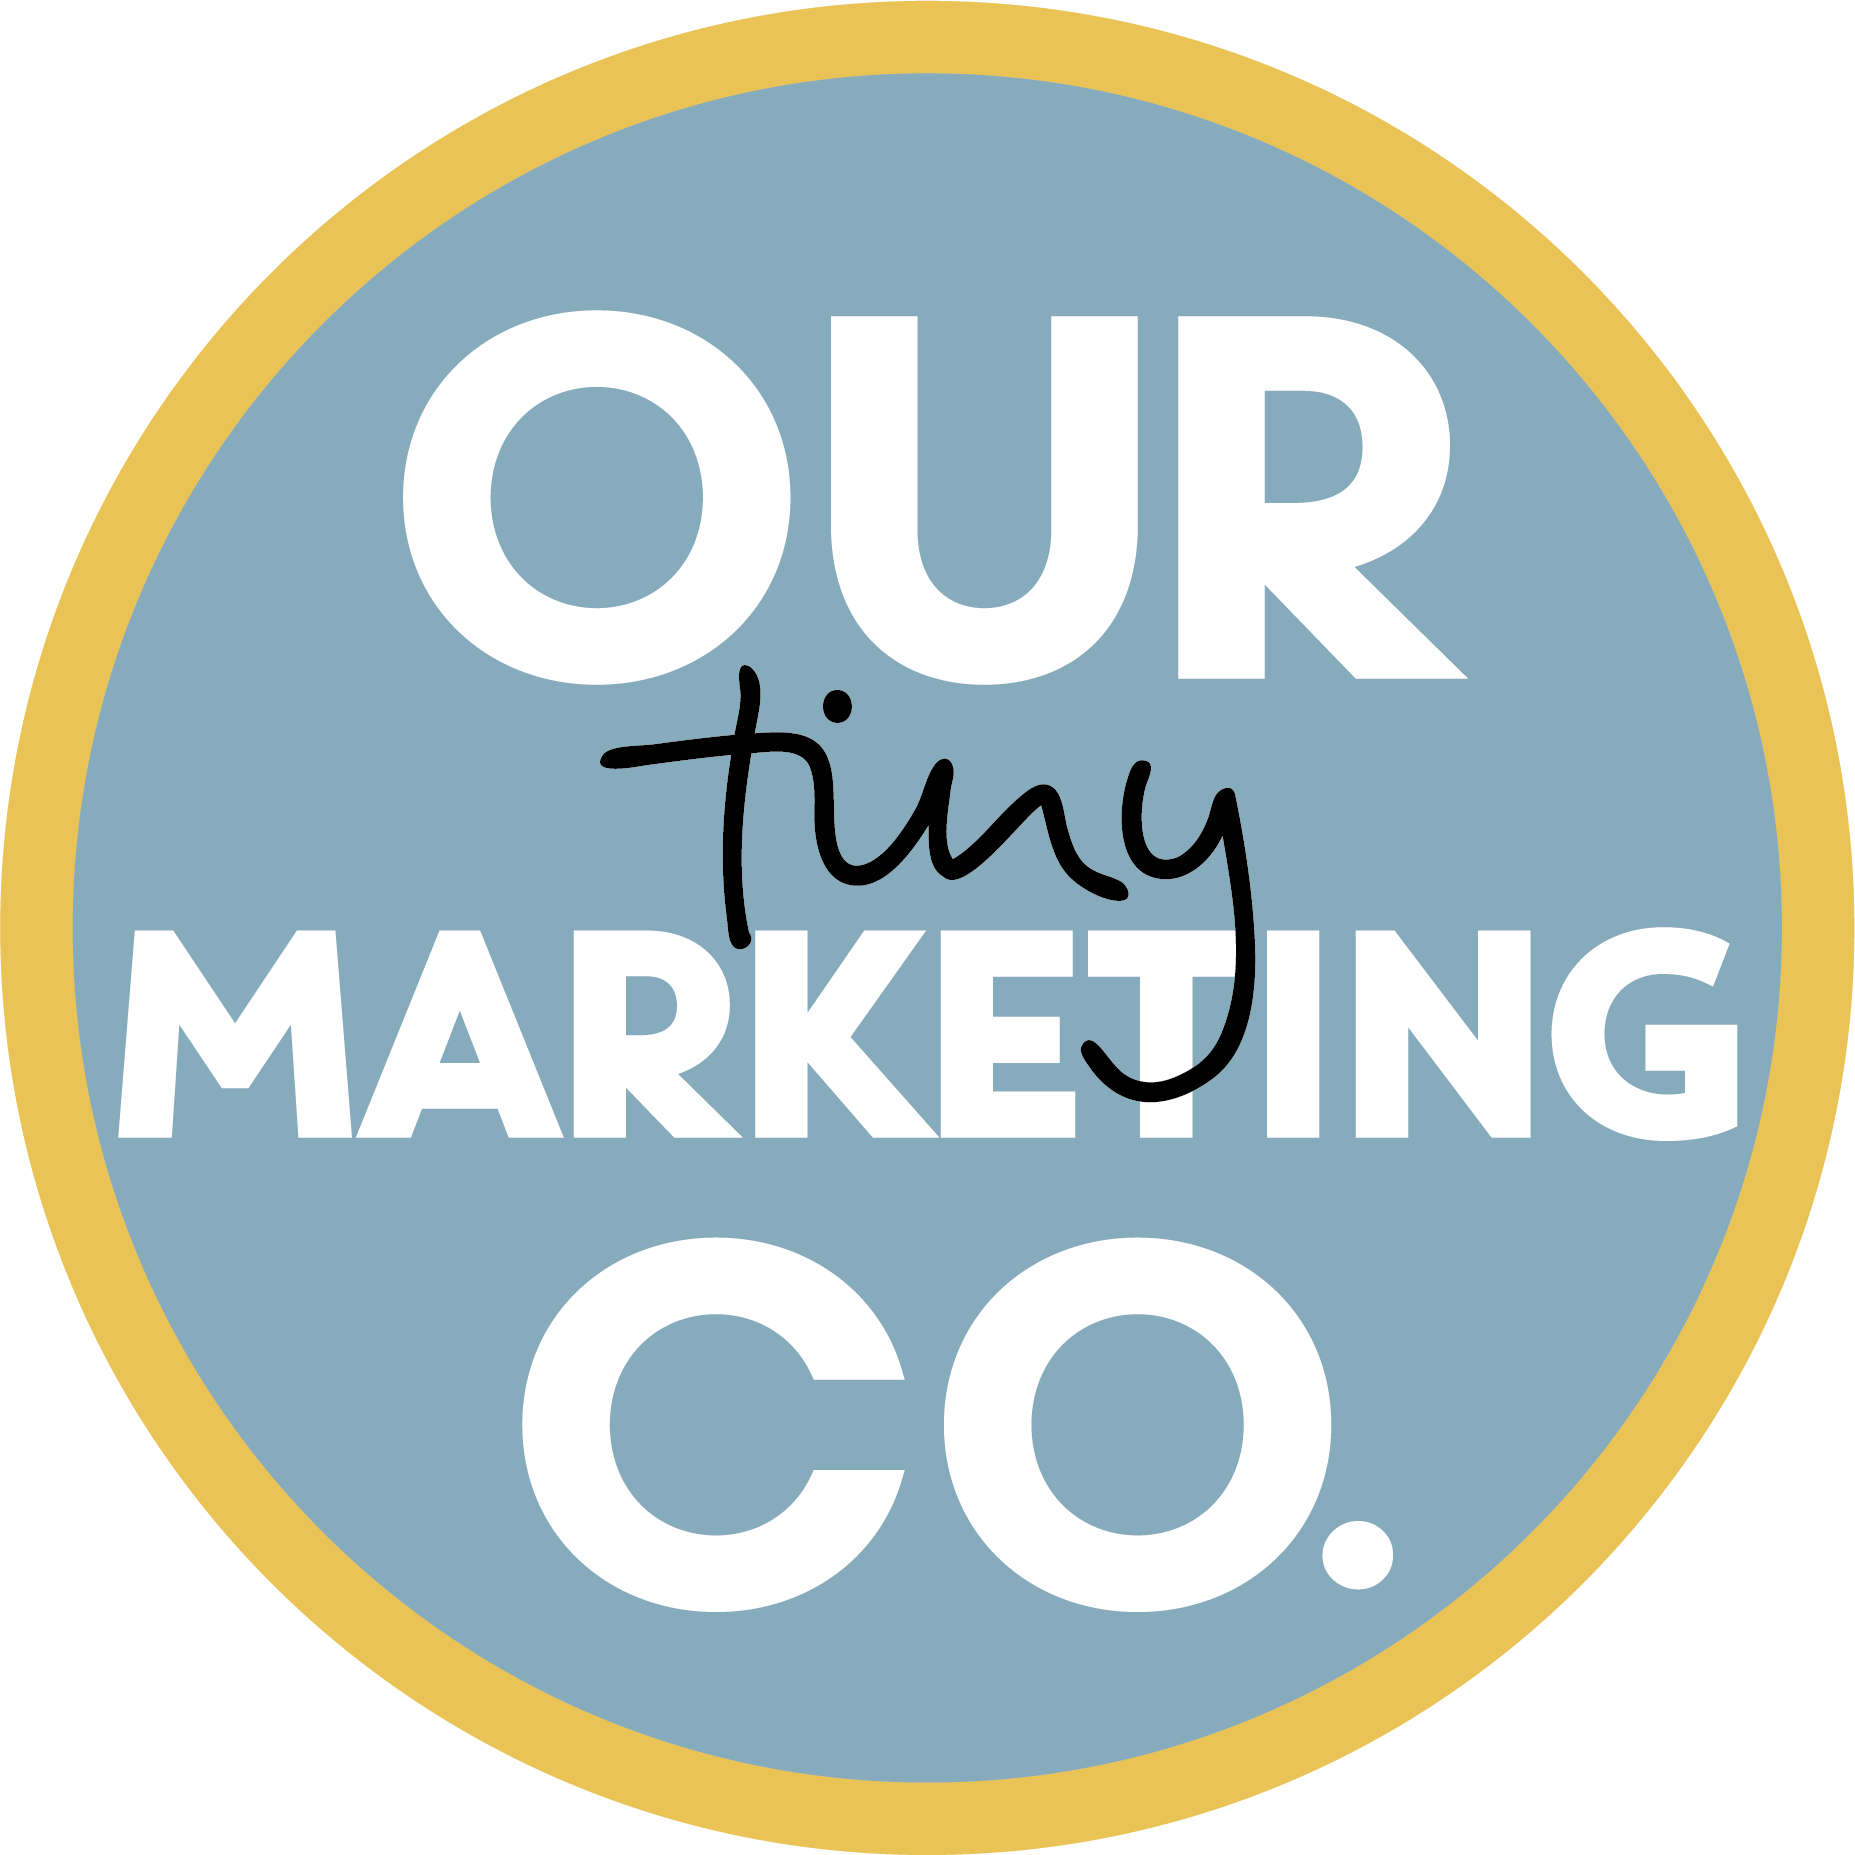 Our Tiny Marketing Co